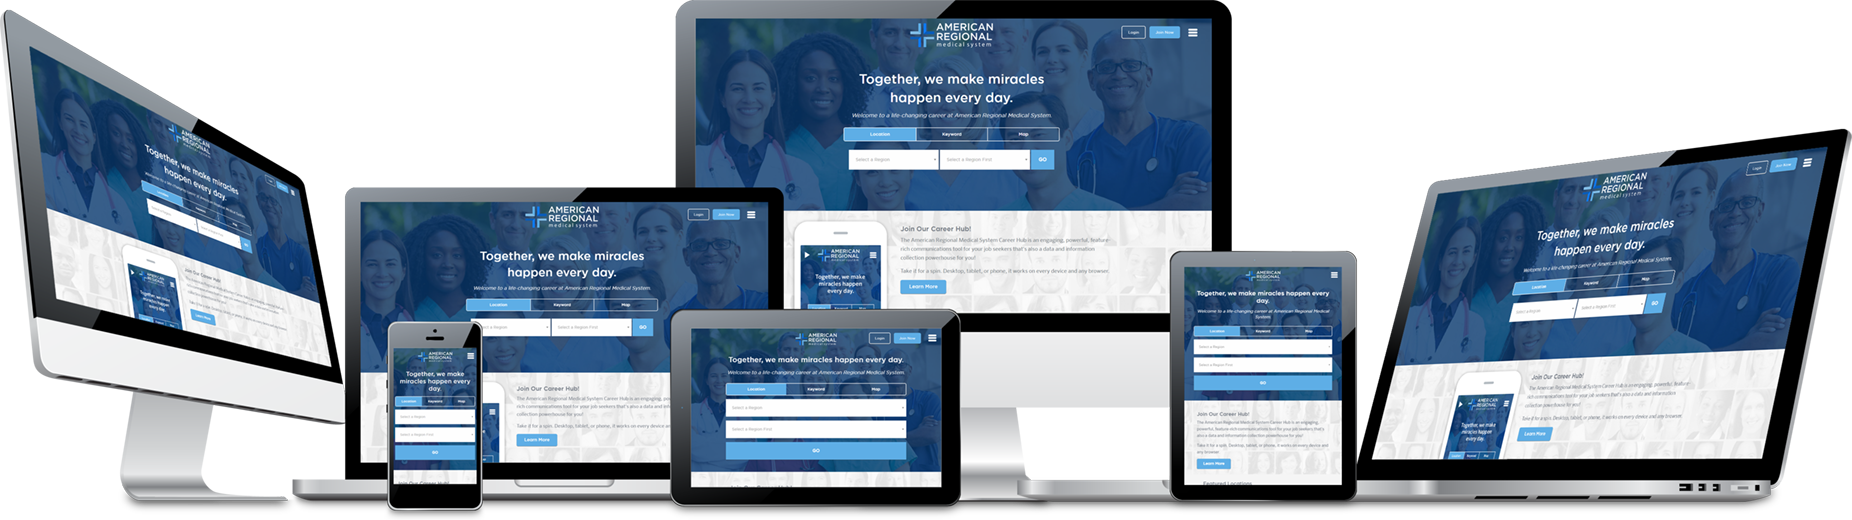 RightJobNow is a completely responsive design system